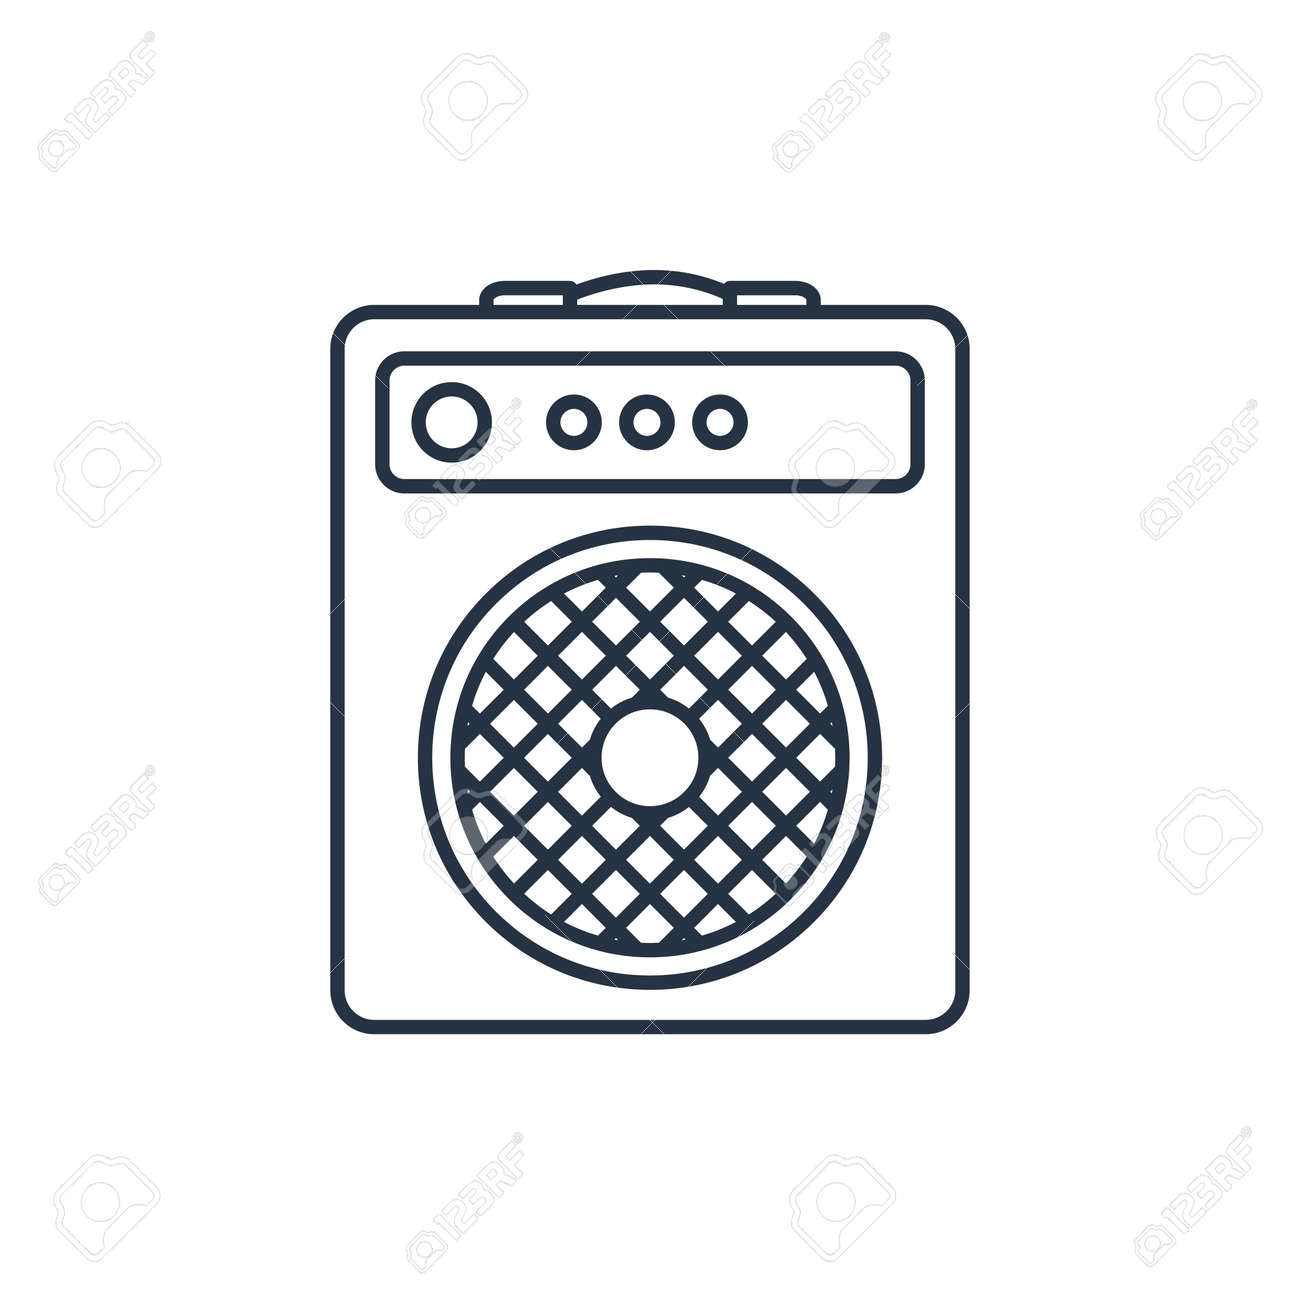 Guitar Amplifier Outline Icon Royalty Free Cliparts, Vectors, And ...